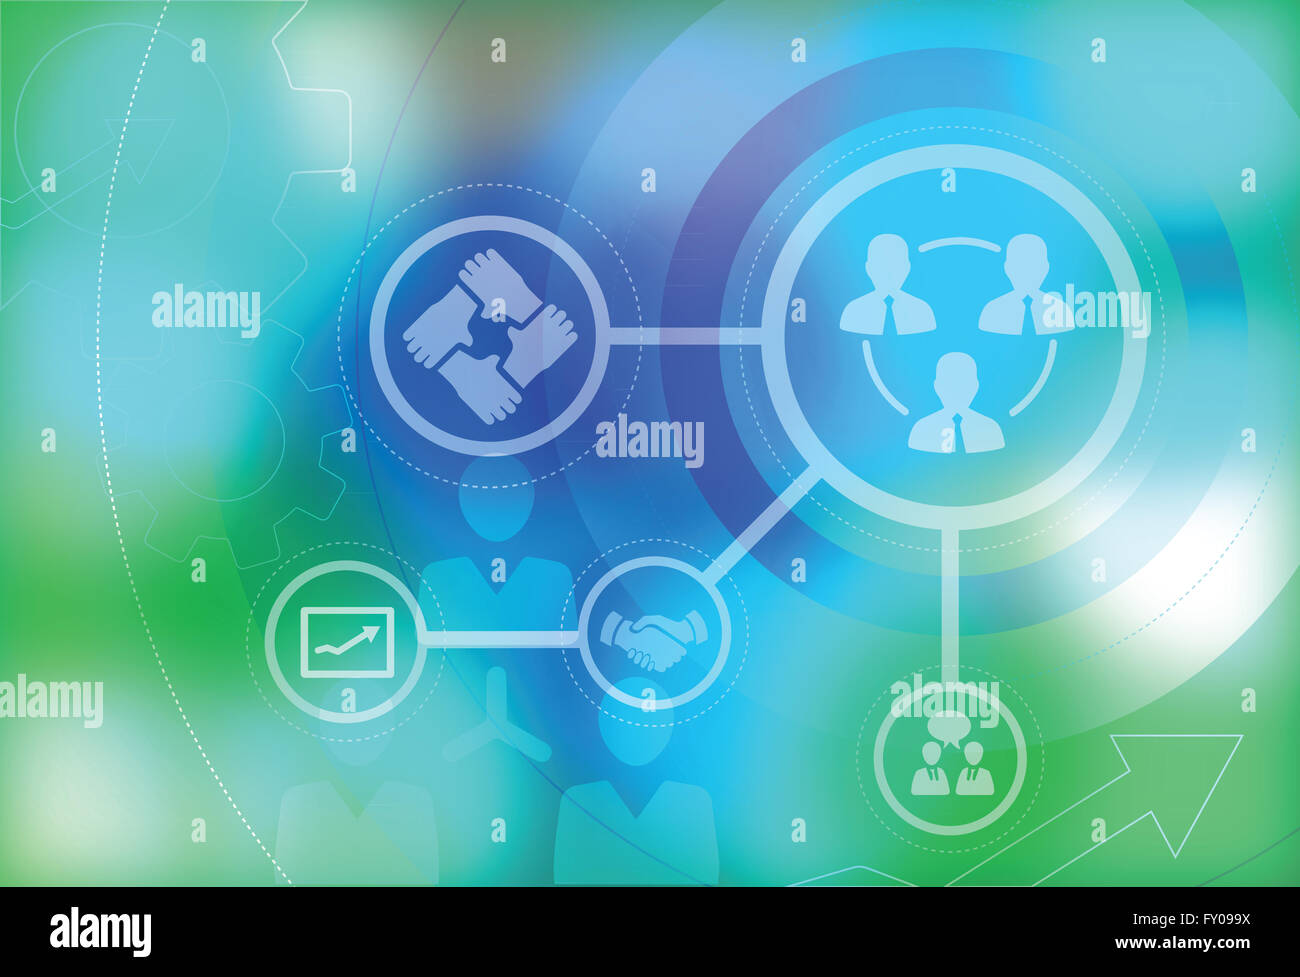 Illustrative image representing business teamwork - Stock Image